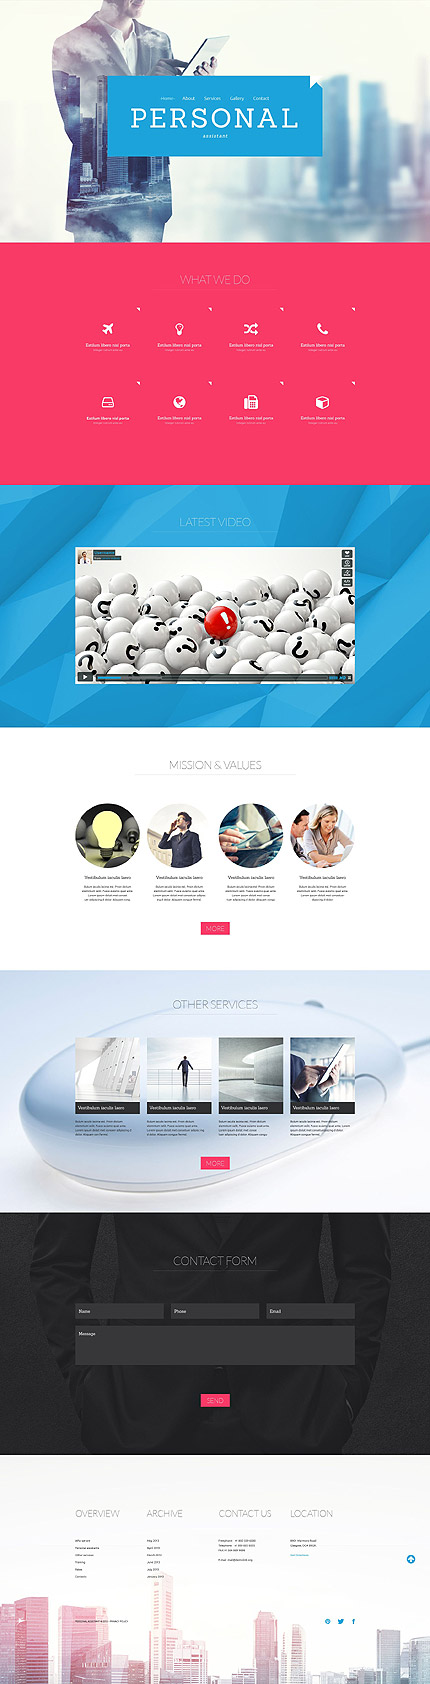 Template 52886 - Personal Assistant Services Responsive One-Page Website Template with Video, Icons, Overlays and Circles